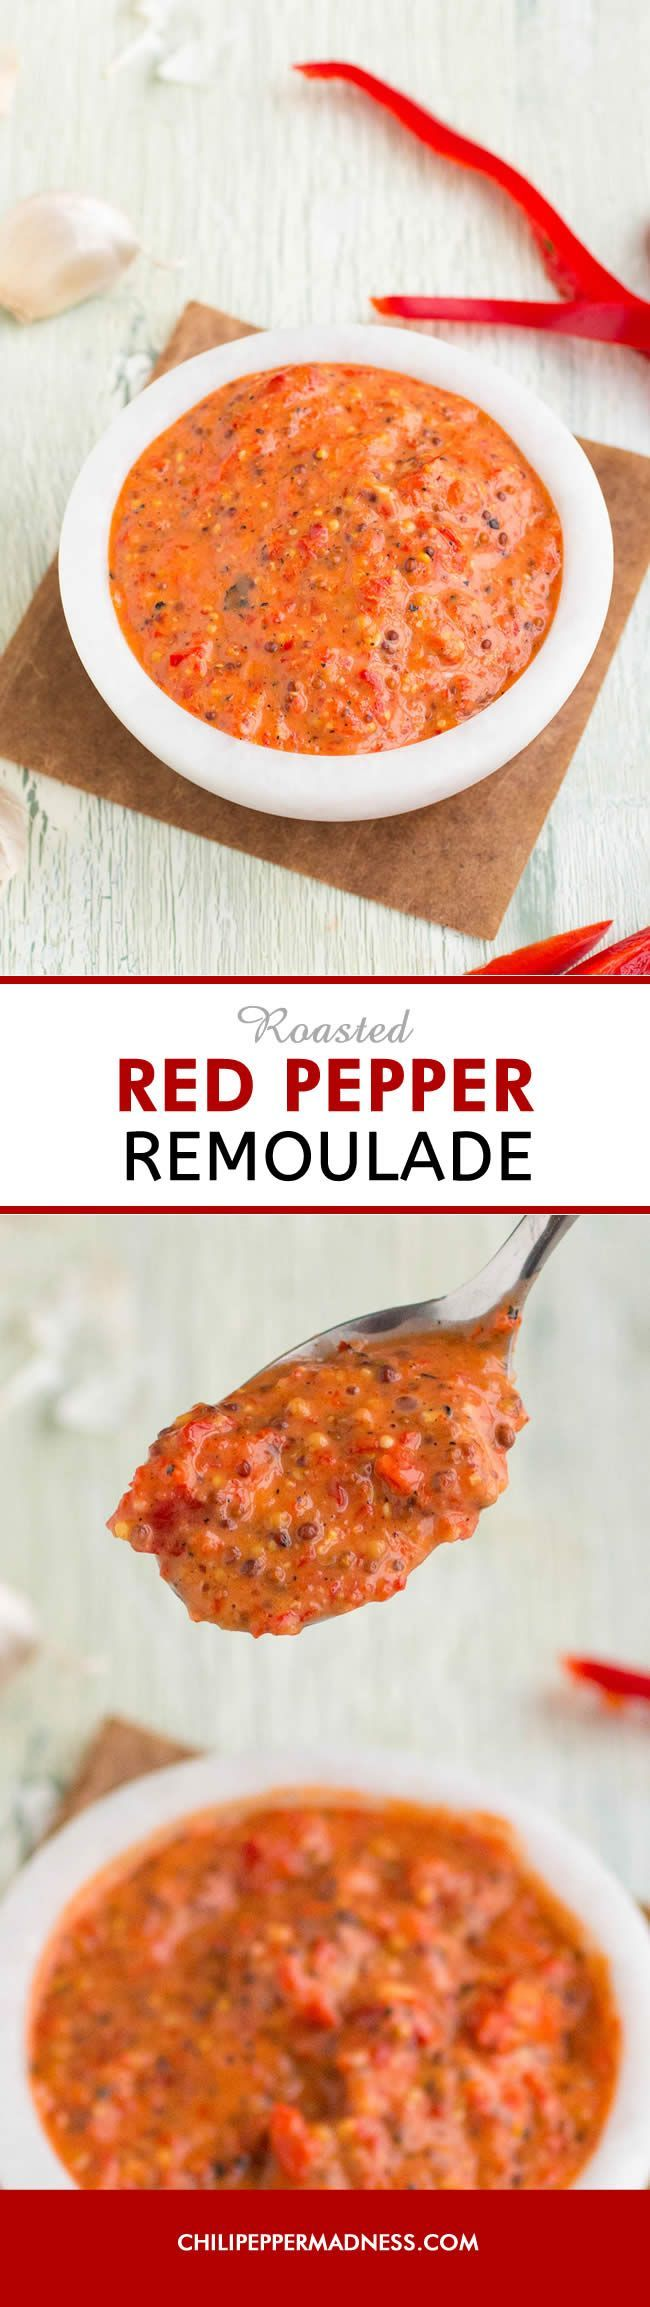 Roasted Red Pepper Remoulade - A quick and easy Louisiana-style remoulade recipe made with rich roasted red peppers, perfect for crab cakes, seafood, vegetables, or drizzling over po boy sandwiches.